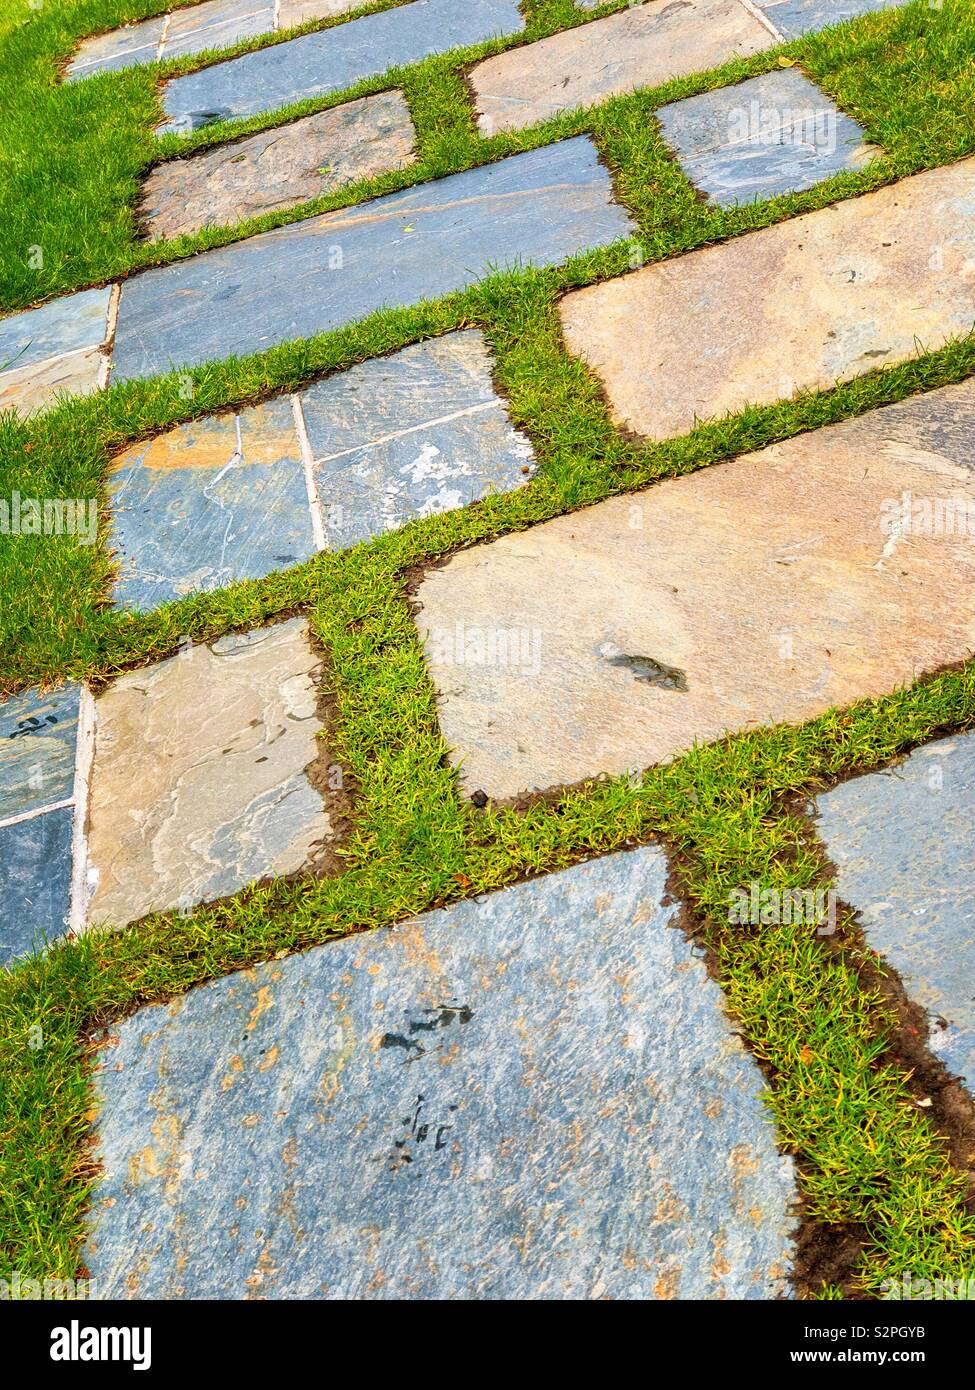 Path of stone paving slabs laid in grass. Stock Photo